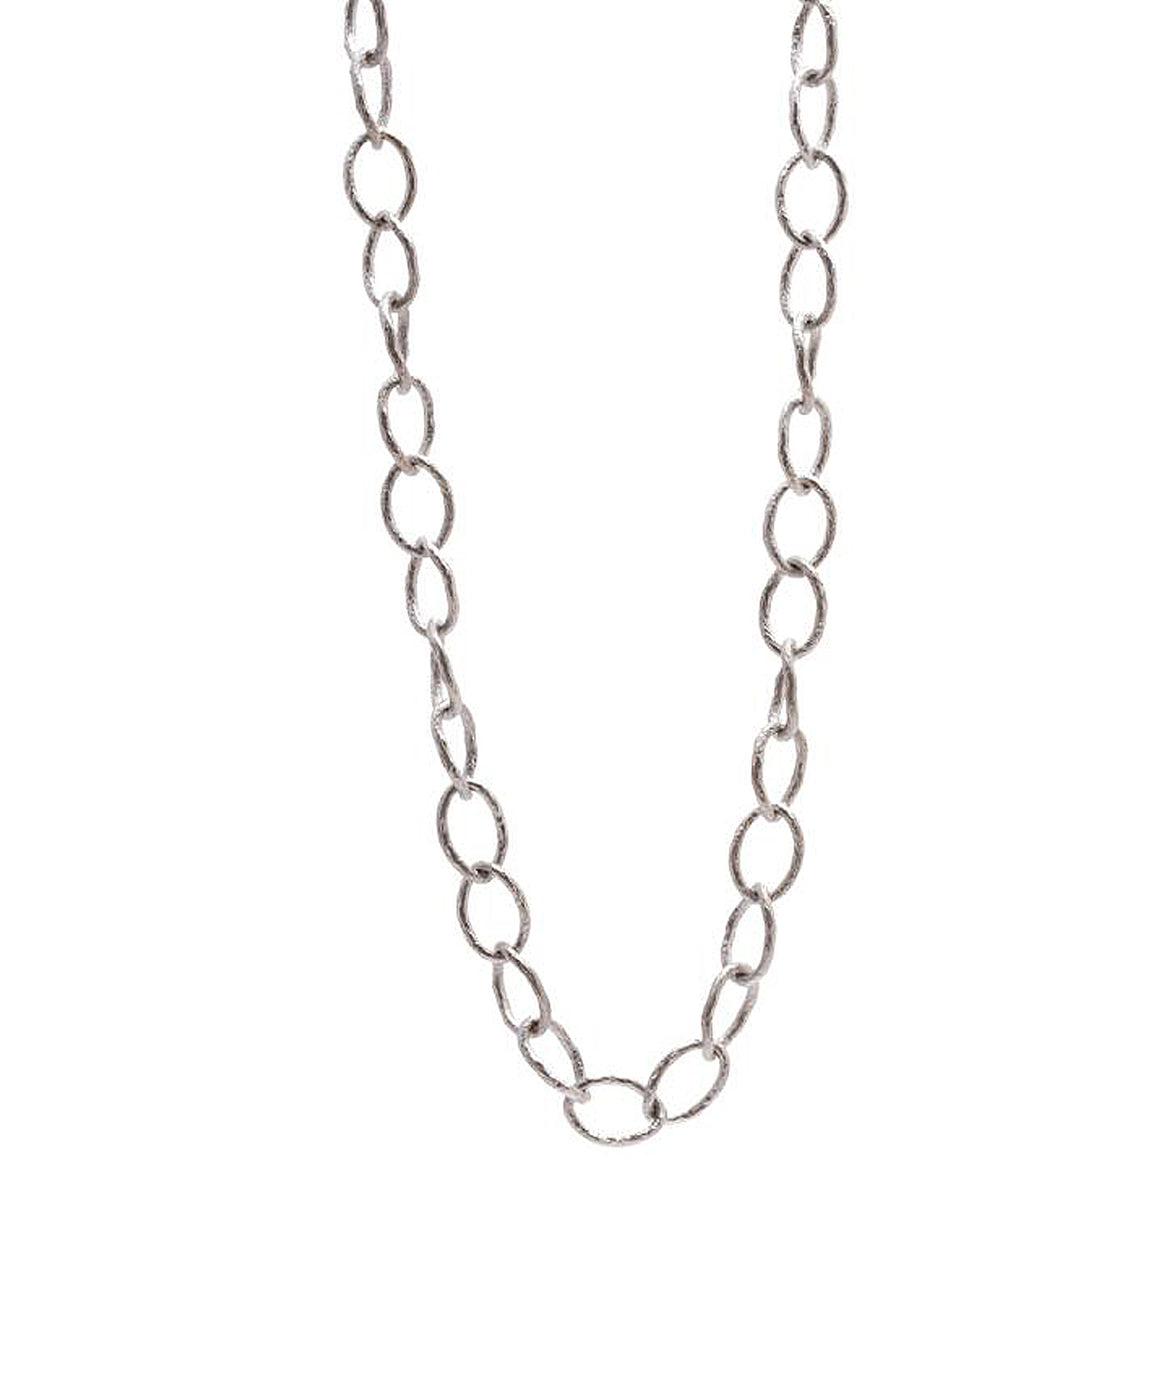 Oval link silver necklace